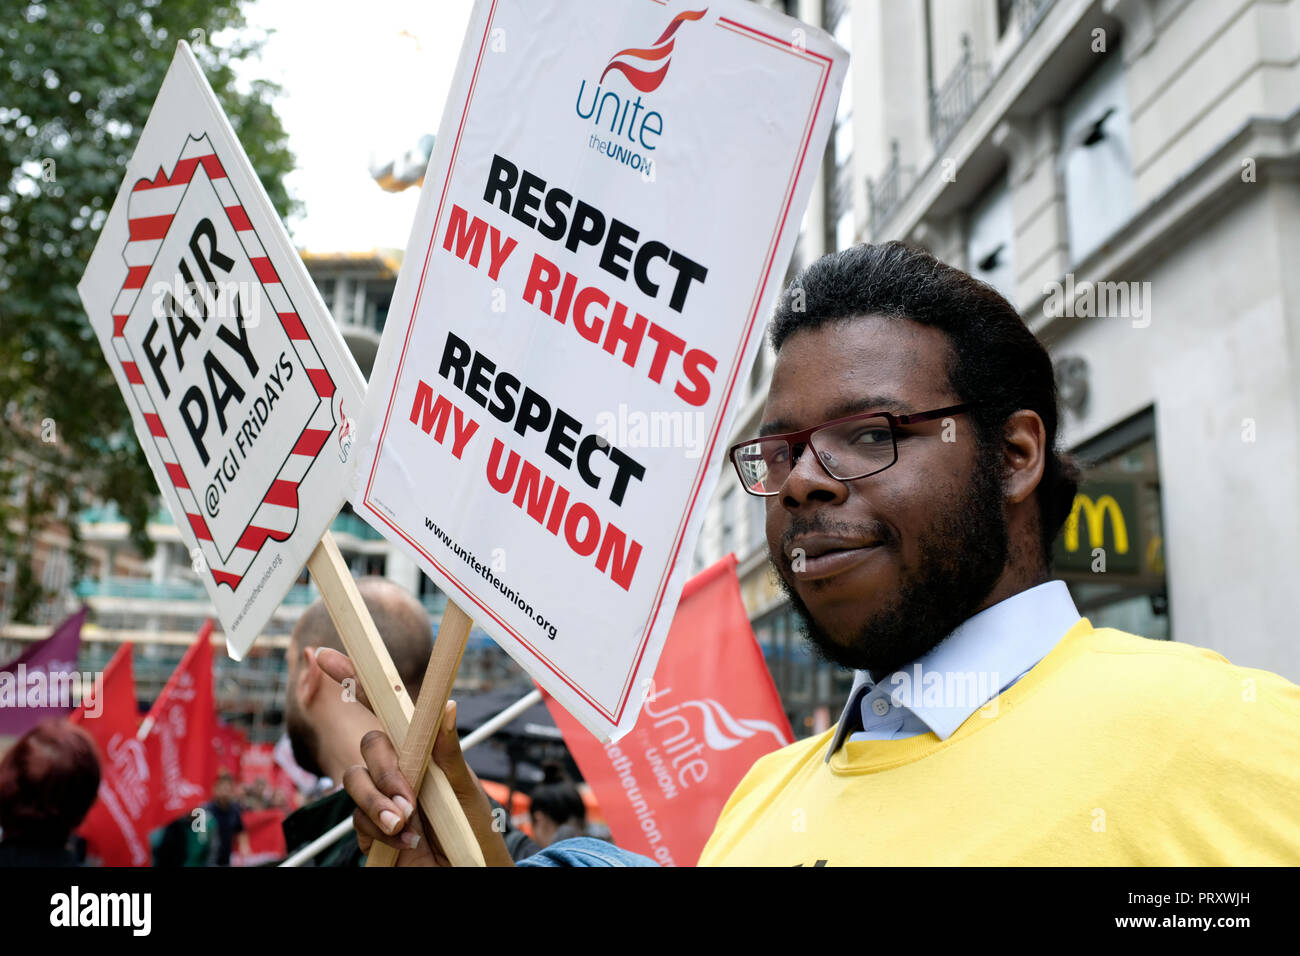 A man seen standing next to a poster saying Respect my rights, respect my Union and Fair pay during the protest. Wetherspoons, TGI Fridays, and McDonald's workers rally together in London to demand better working conditions and a fair pay in the hospitality industry. - Stock Image